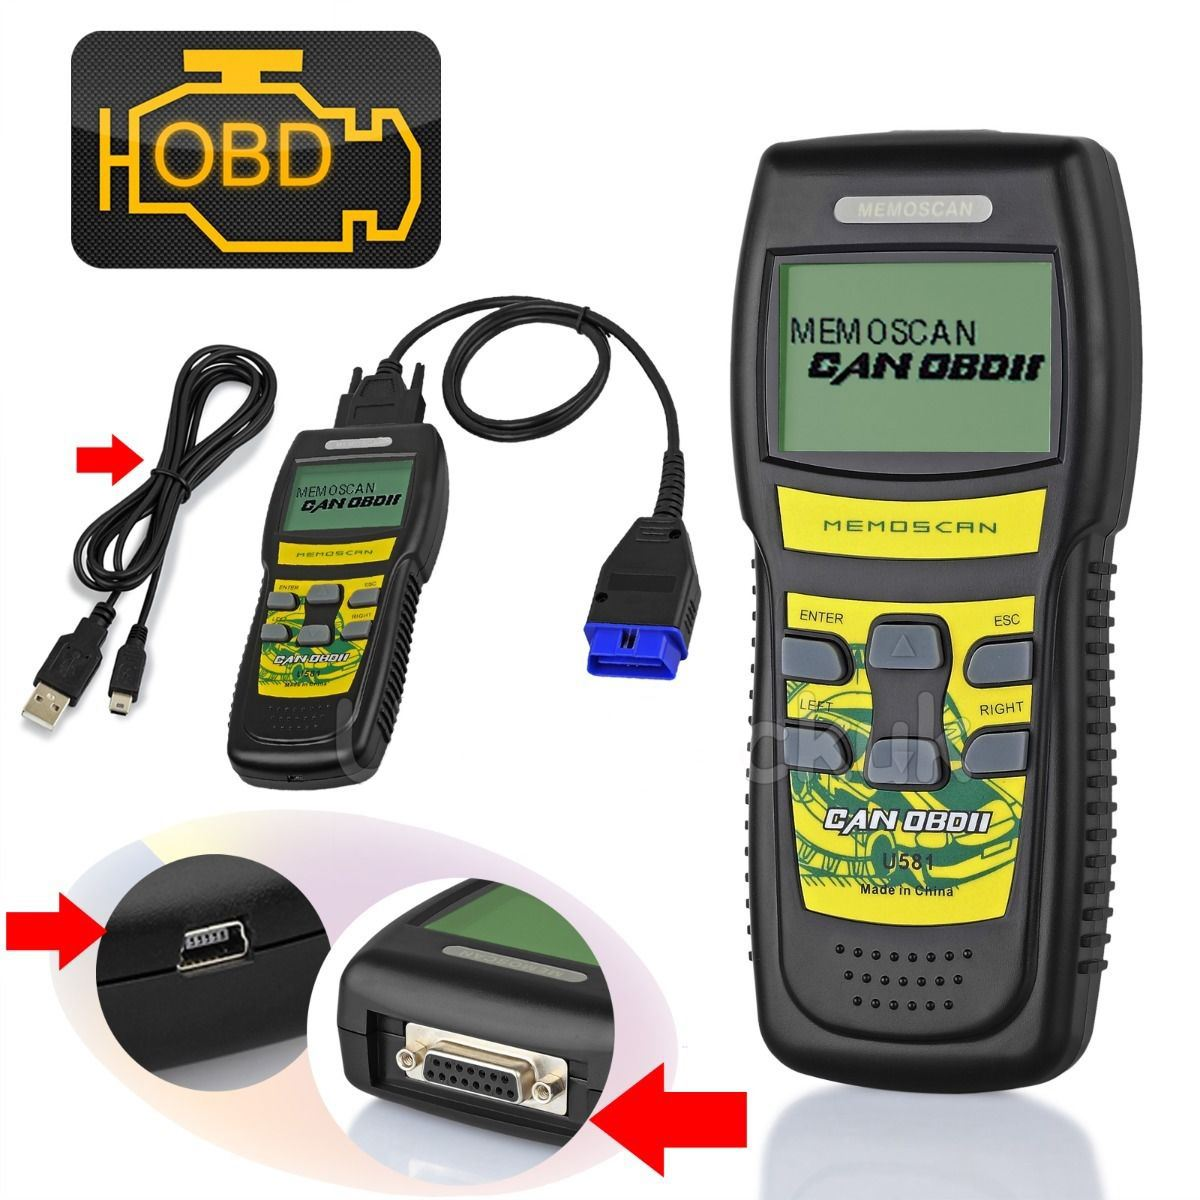 u581 car diagnostic scanner can obd obd2 eobd scan tool engine fault code reader ebay. Black Bedroom Furniture Sets. Home Design Ideas